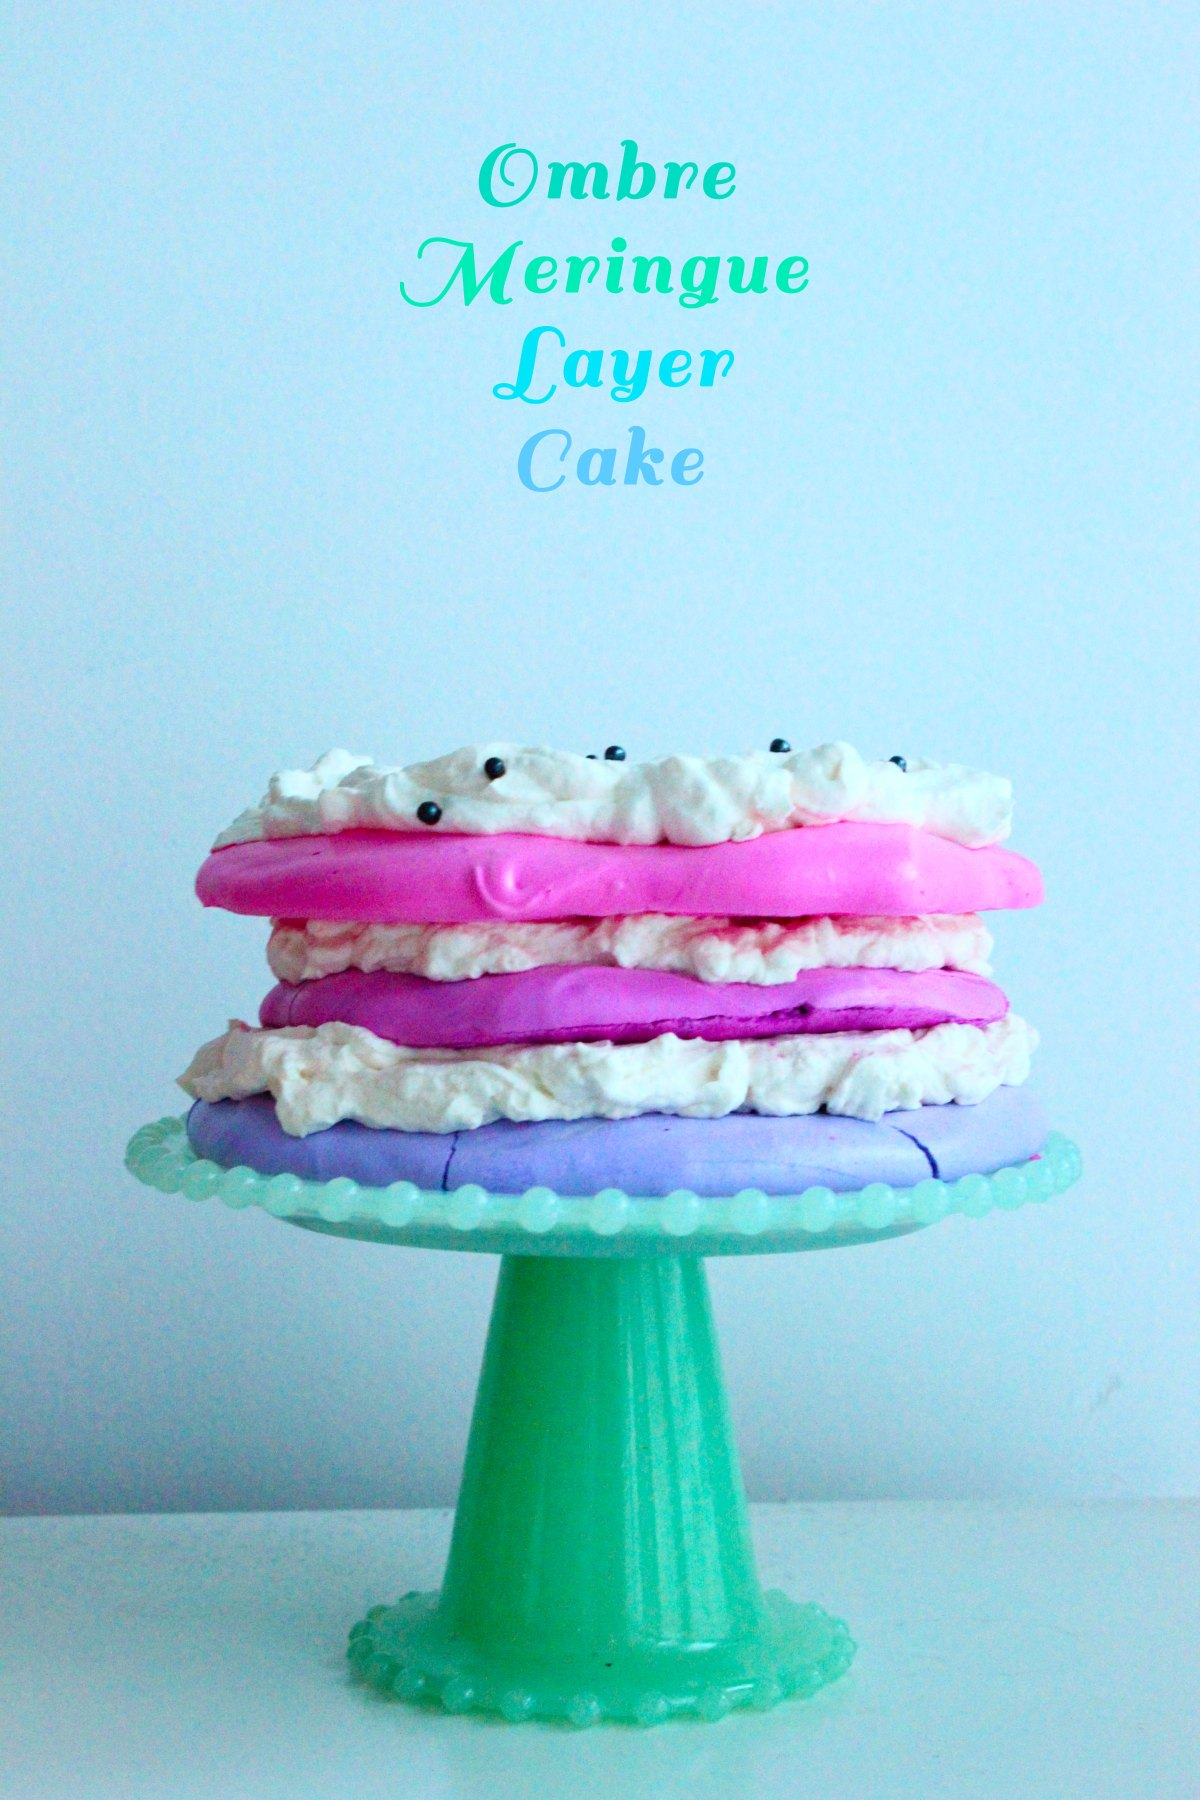 Ombre Meringue Layer Cake